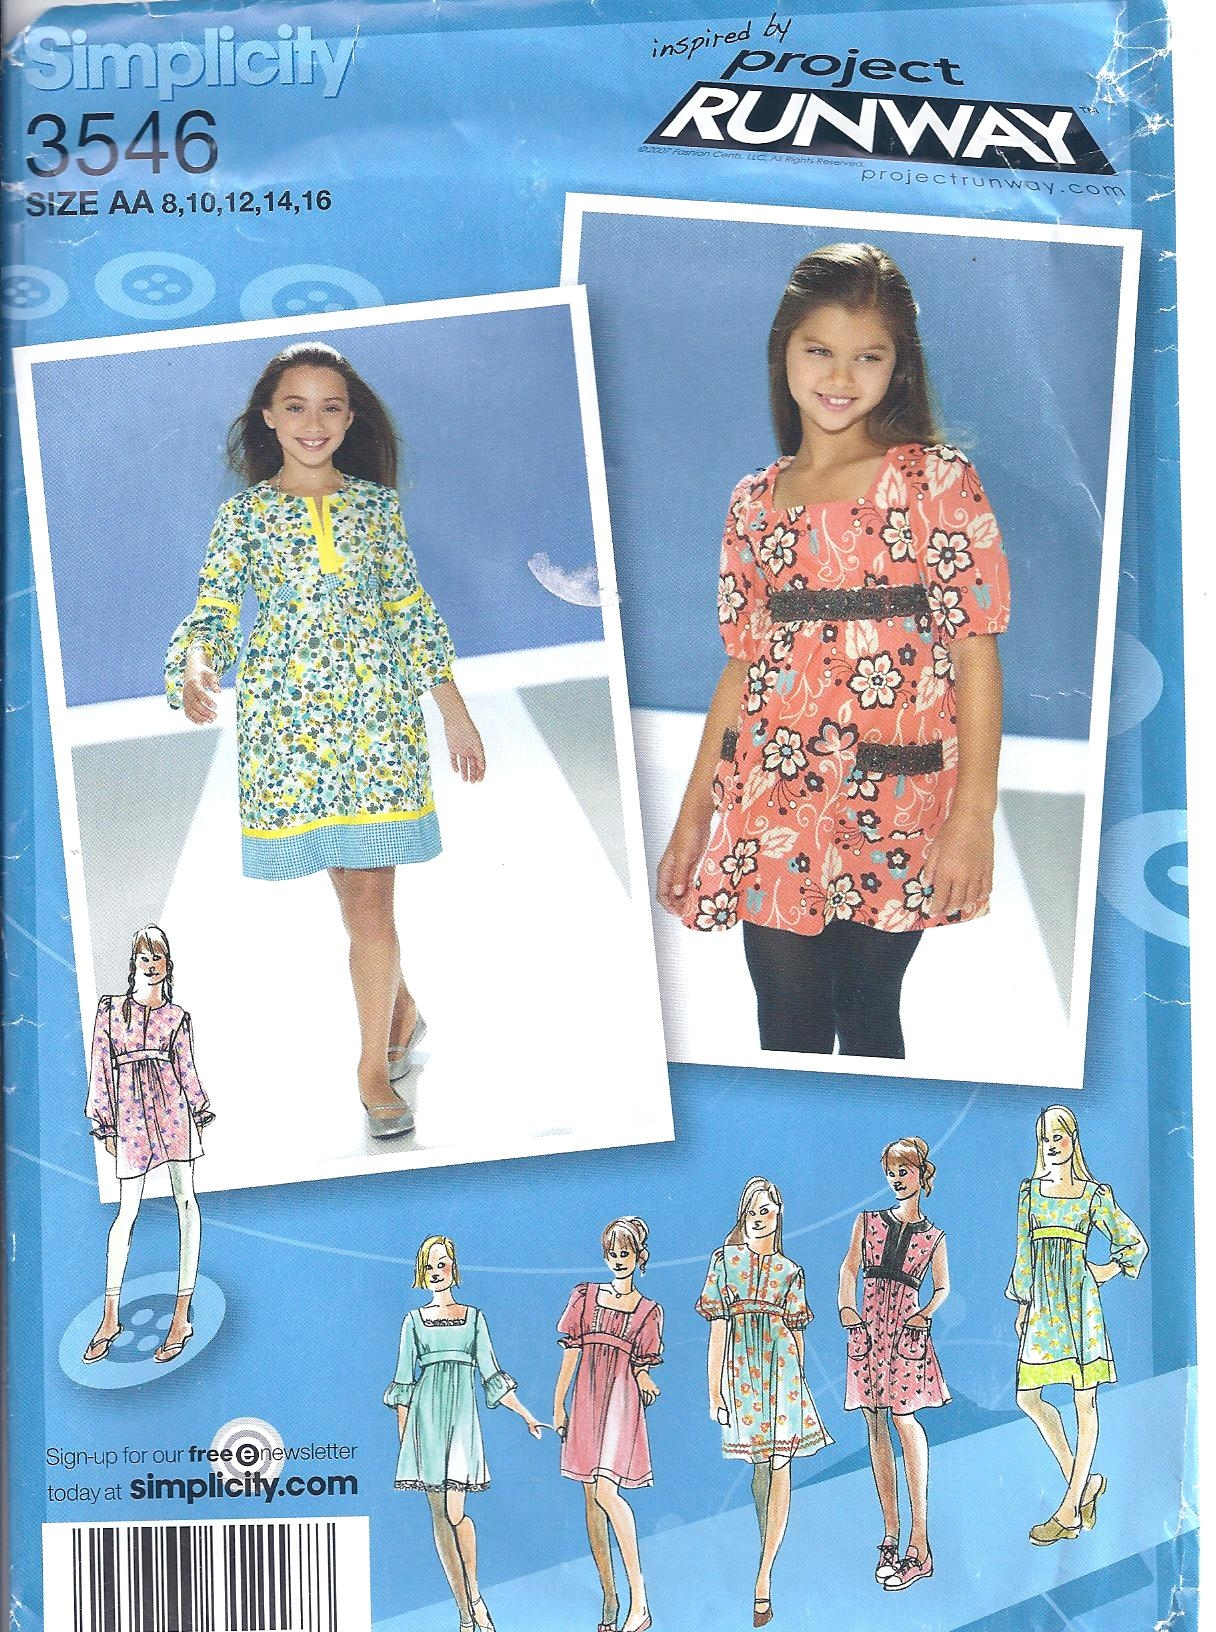 Simplicity Pattern 3546 Project Runway Girls Top And Dress Sewing Pattern Heaven